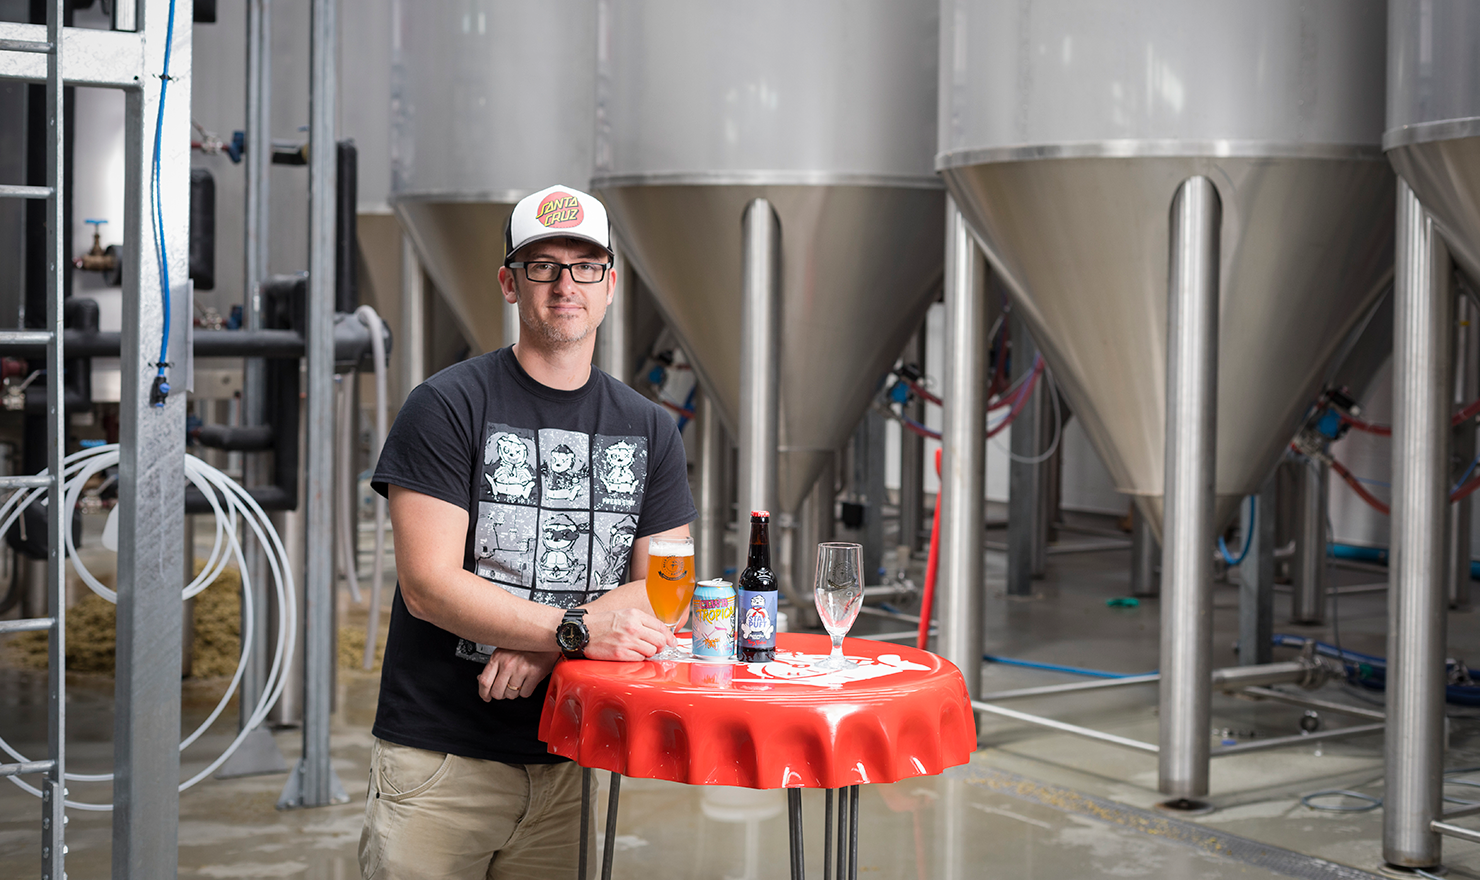 Tiny Rebel's Gazz Williams talking about Cali Pale Ale on PerfectDraft